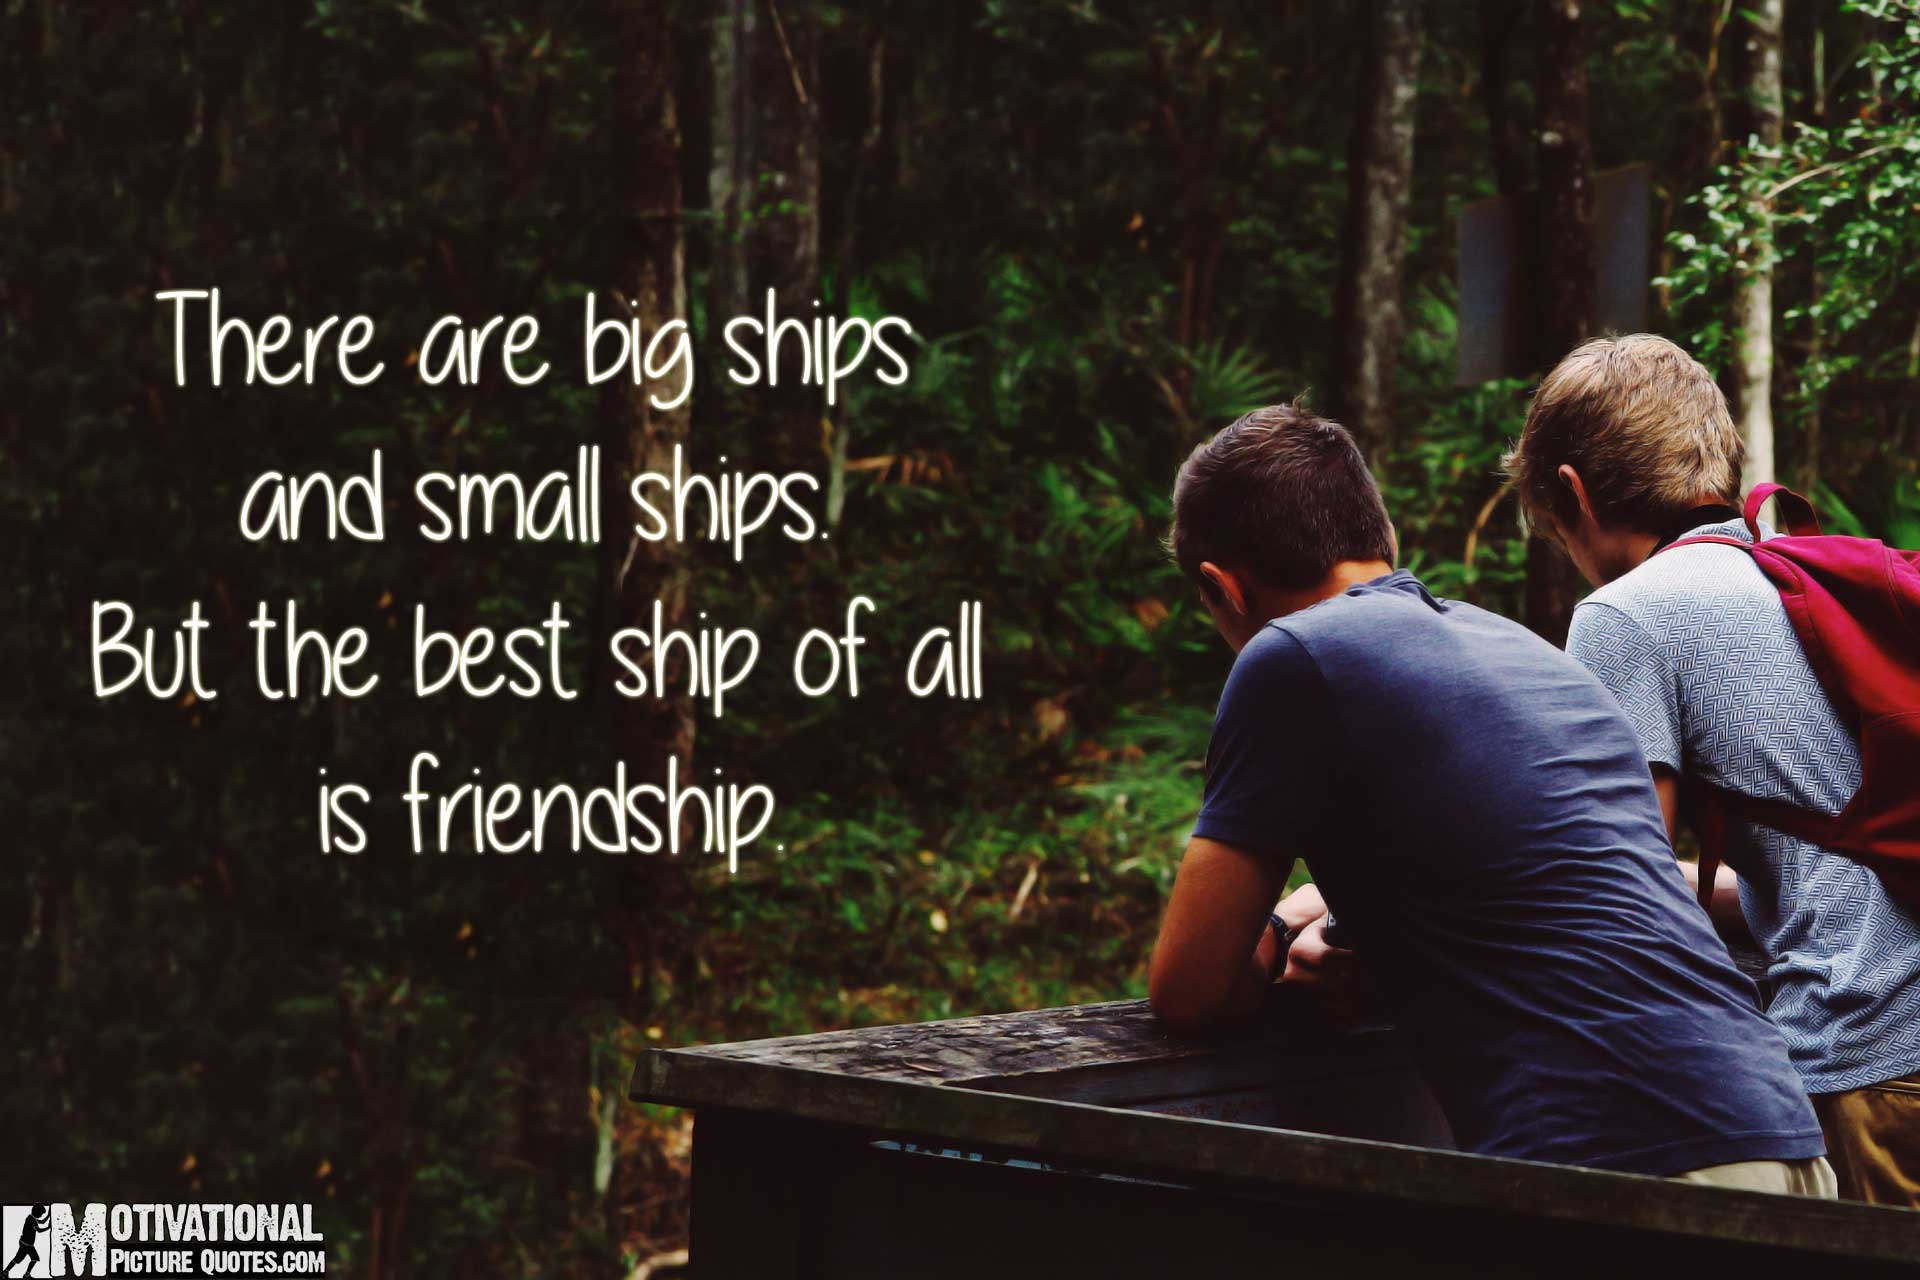 Friend Quotes 25 Inspirational Friendship Quotes Images  Free Download